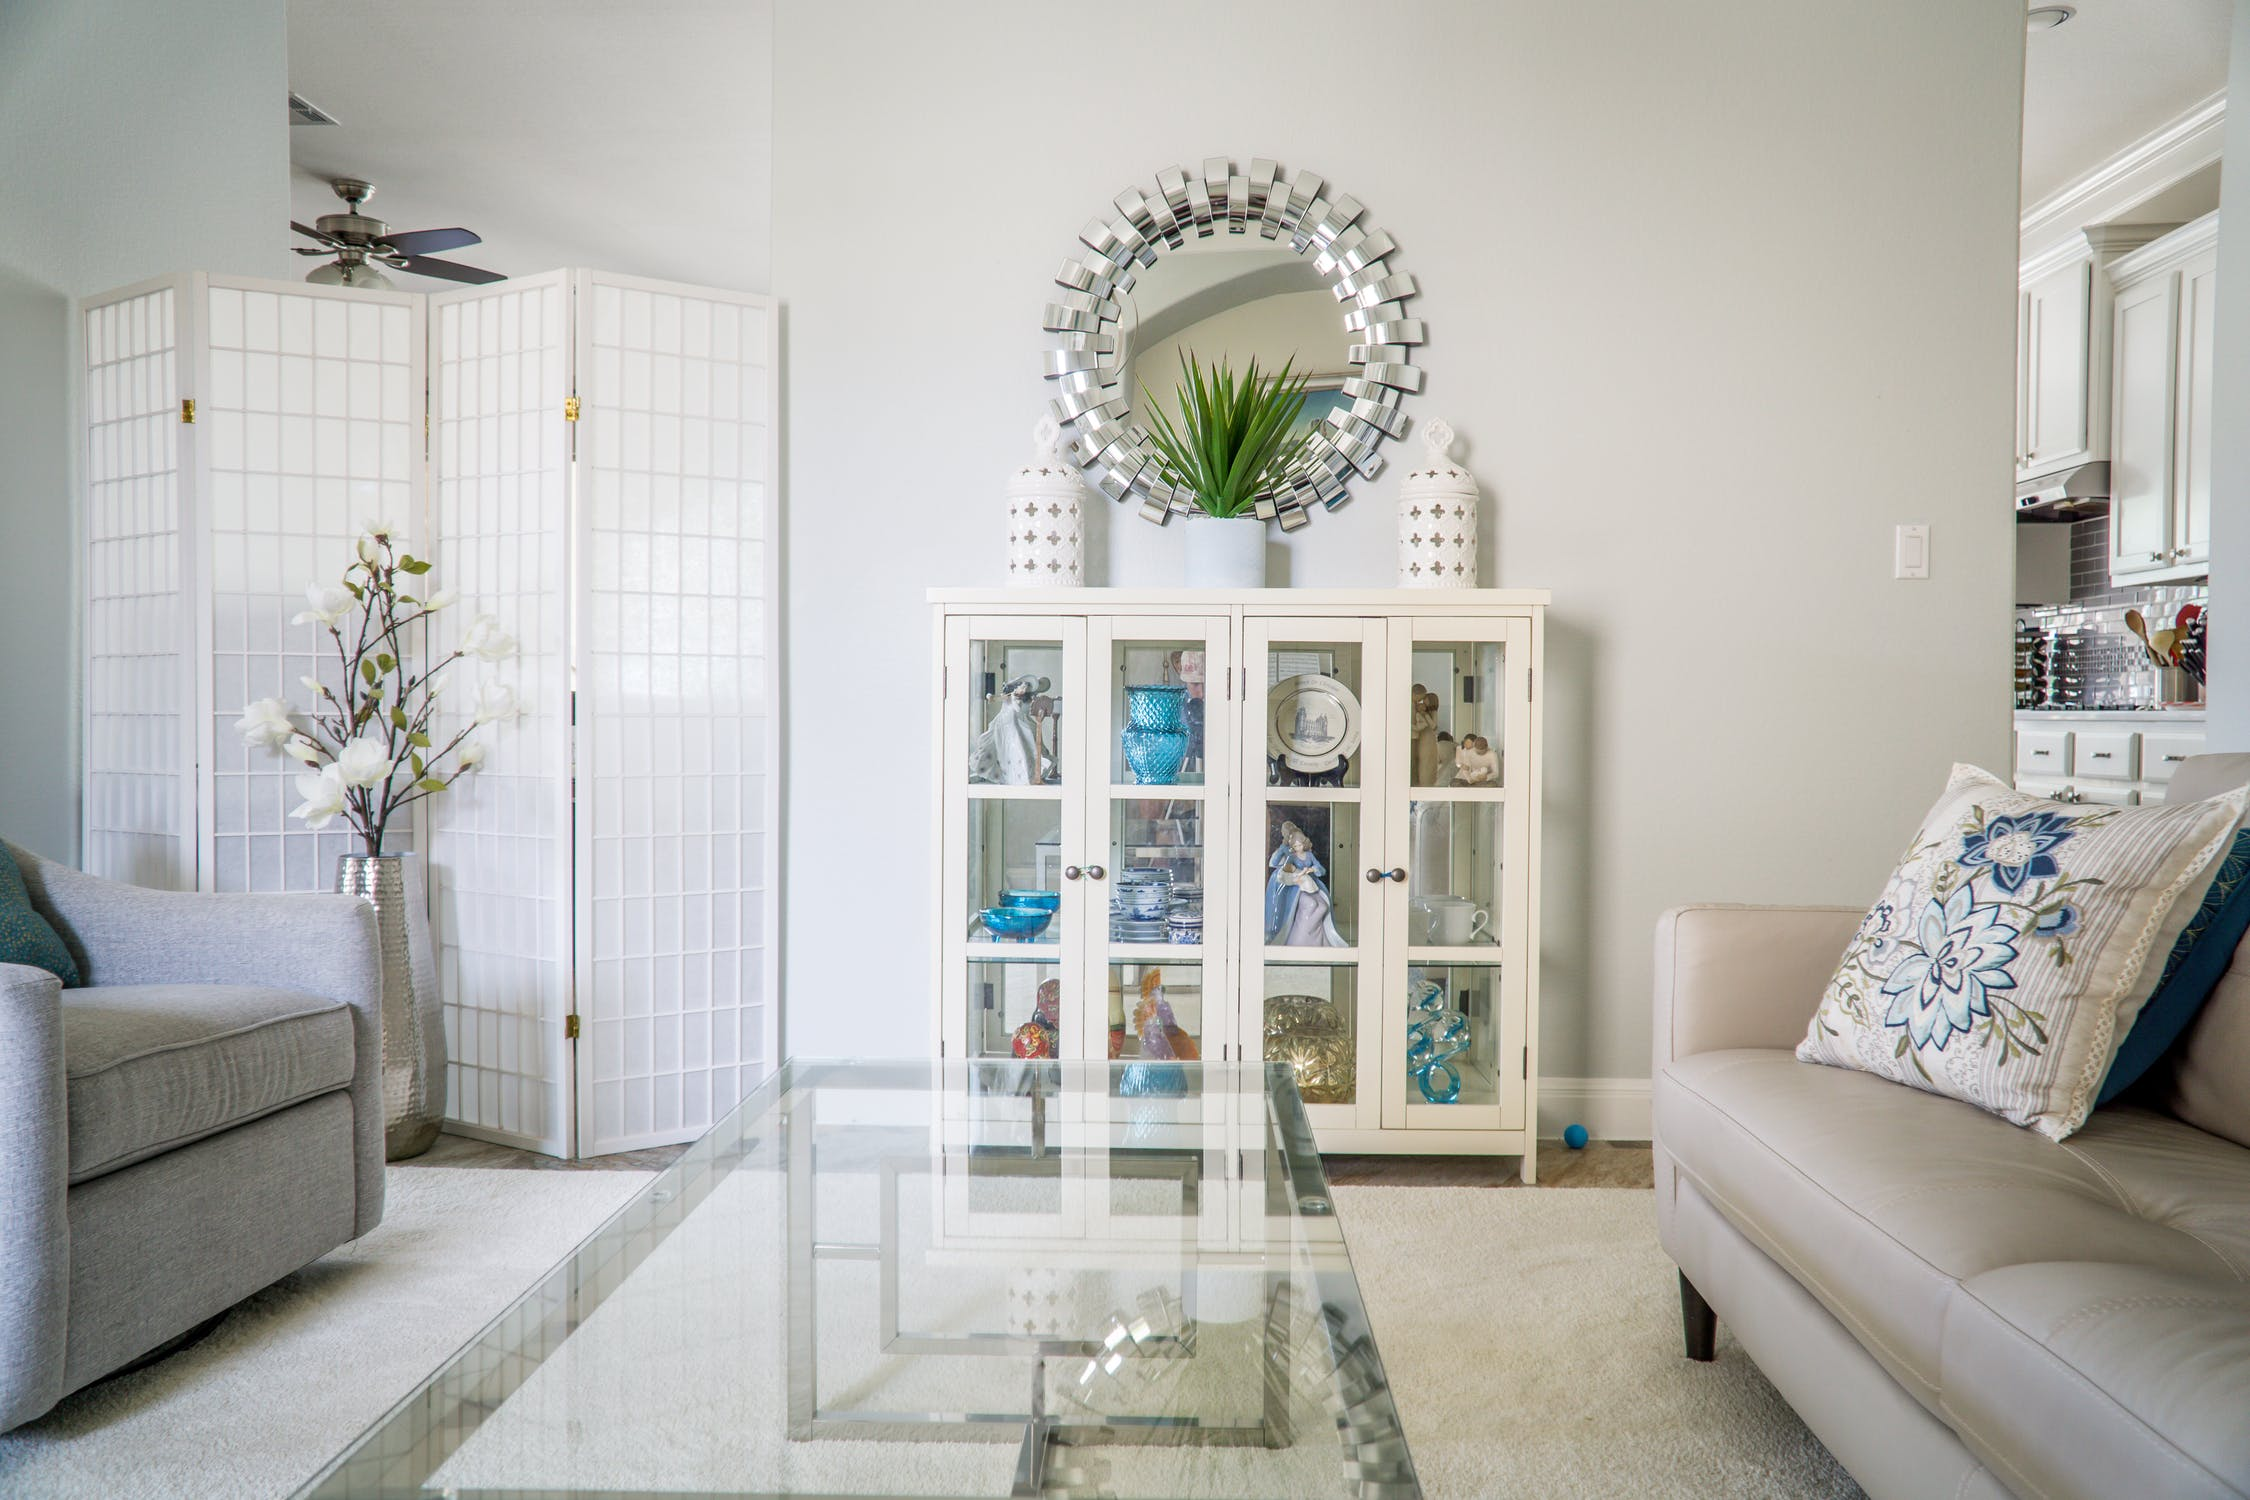 n all-white living room with a glass coffee table and a vintage white cabinet.